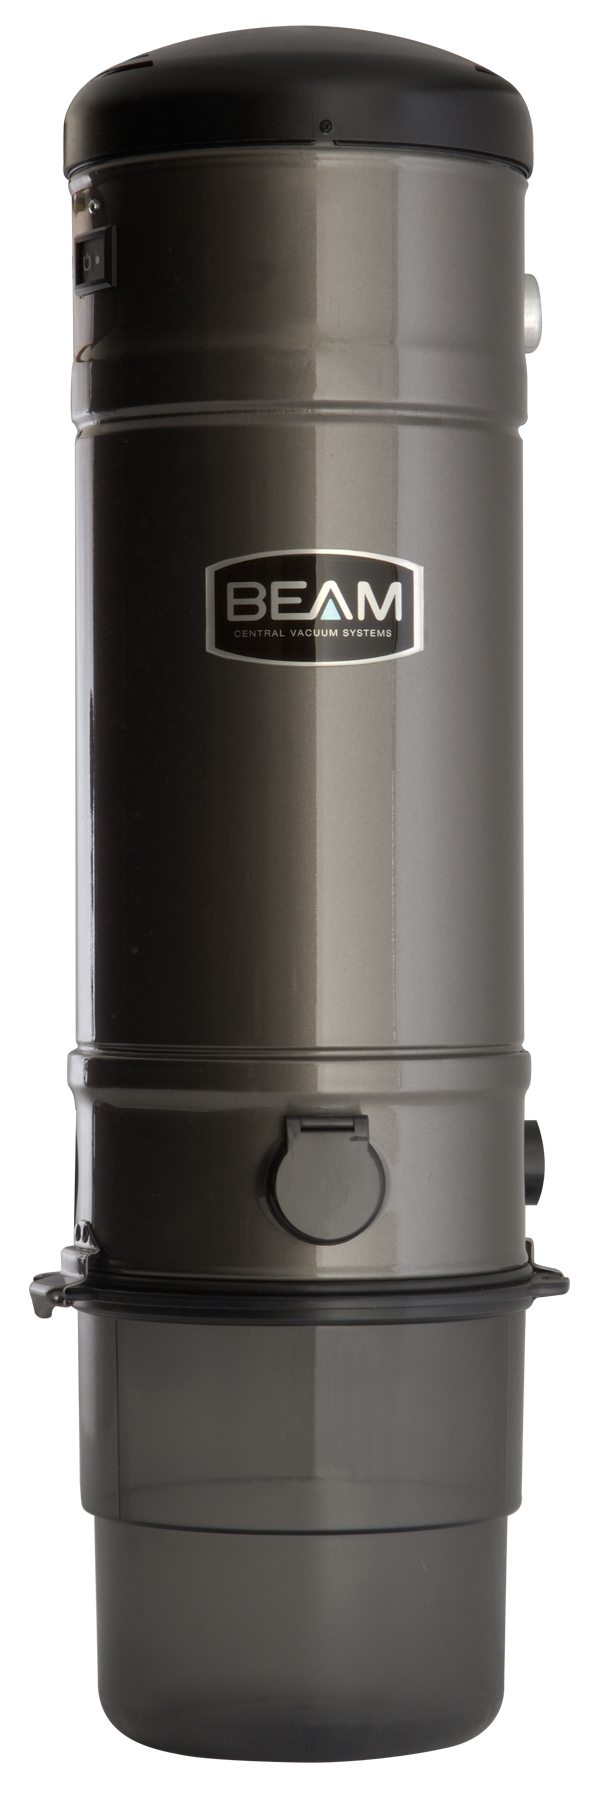 Beam Serenity 325 Power Unit